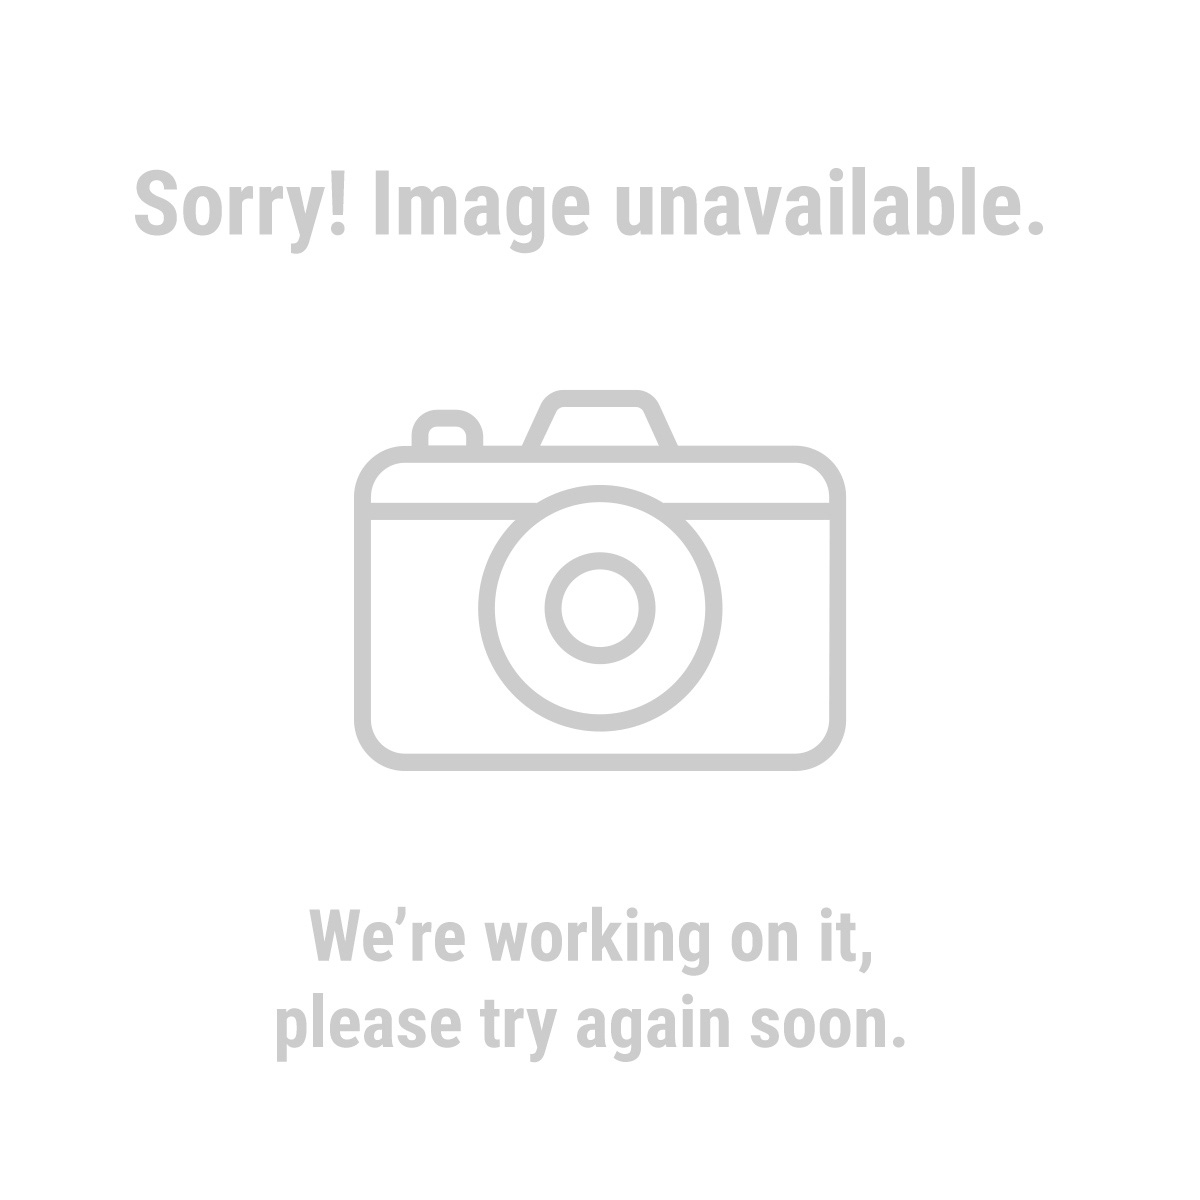 HFT 60272 100 Ft. x 12 Gauge Outdoor Extension Cord